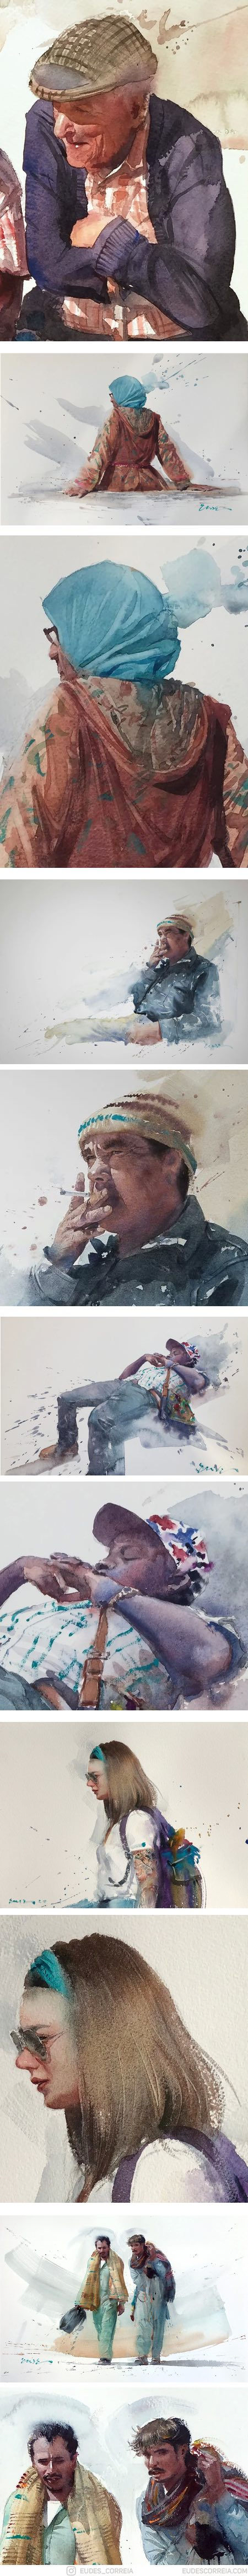 Eudes Correia watercolors